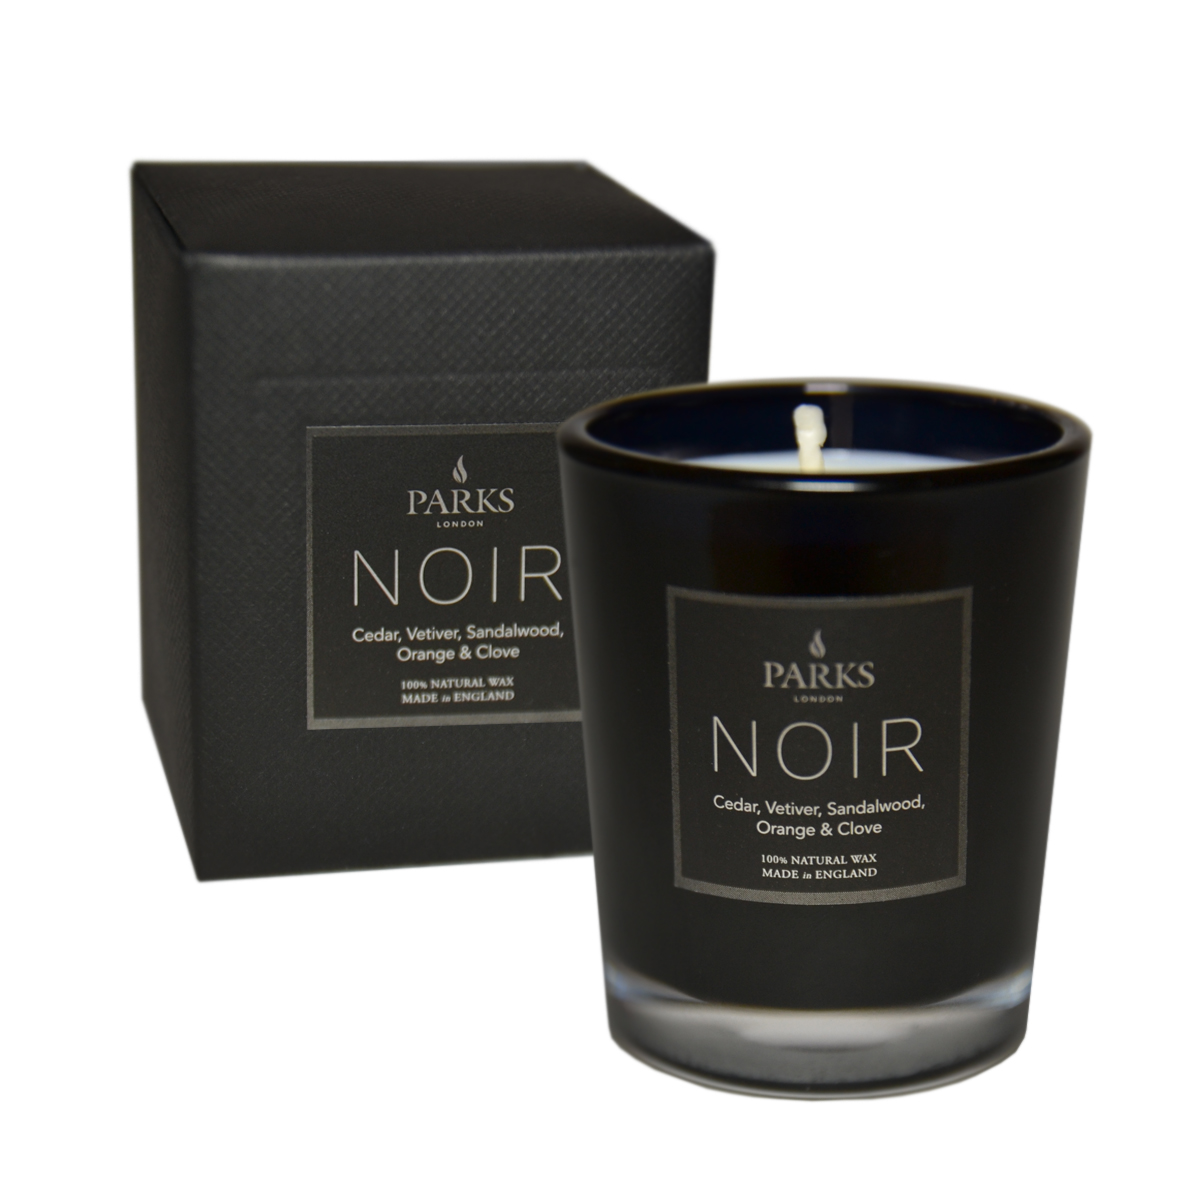 Noir Cedar, Vetiver, Sandalwood, Orange & Clove Small 1 Wick